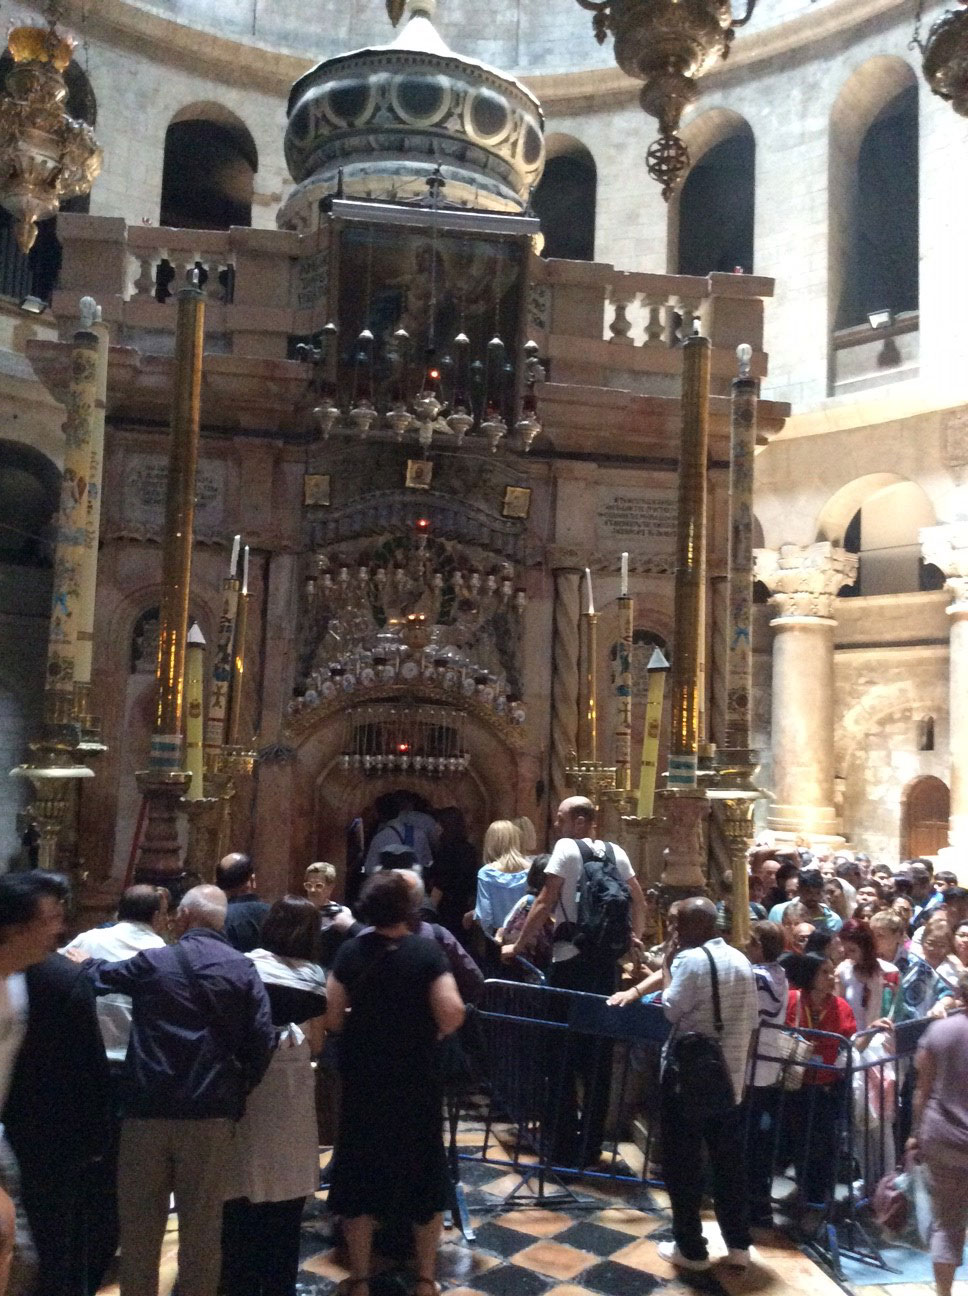 Crowds queue for a chance to step inside of the Edicule or Tomb of Christ.